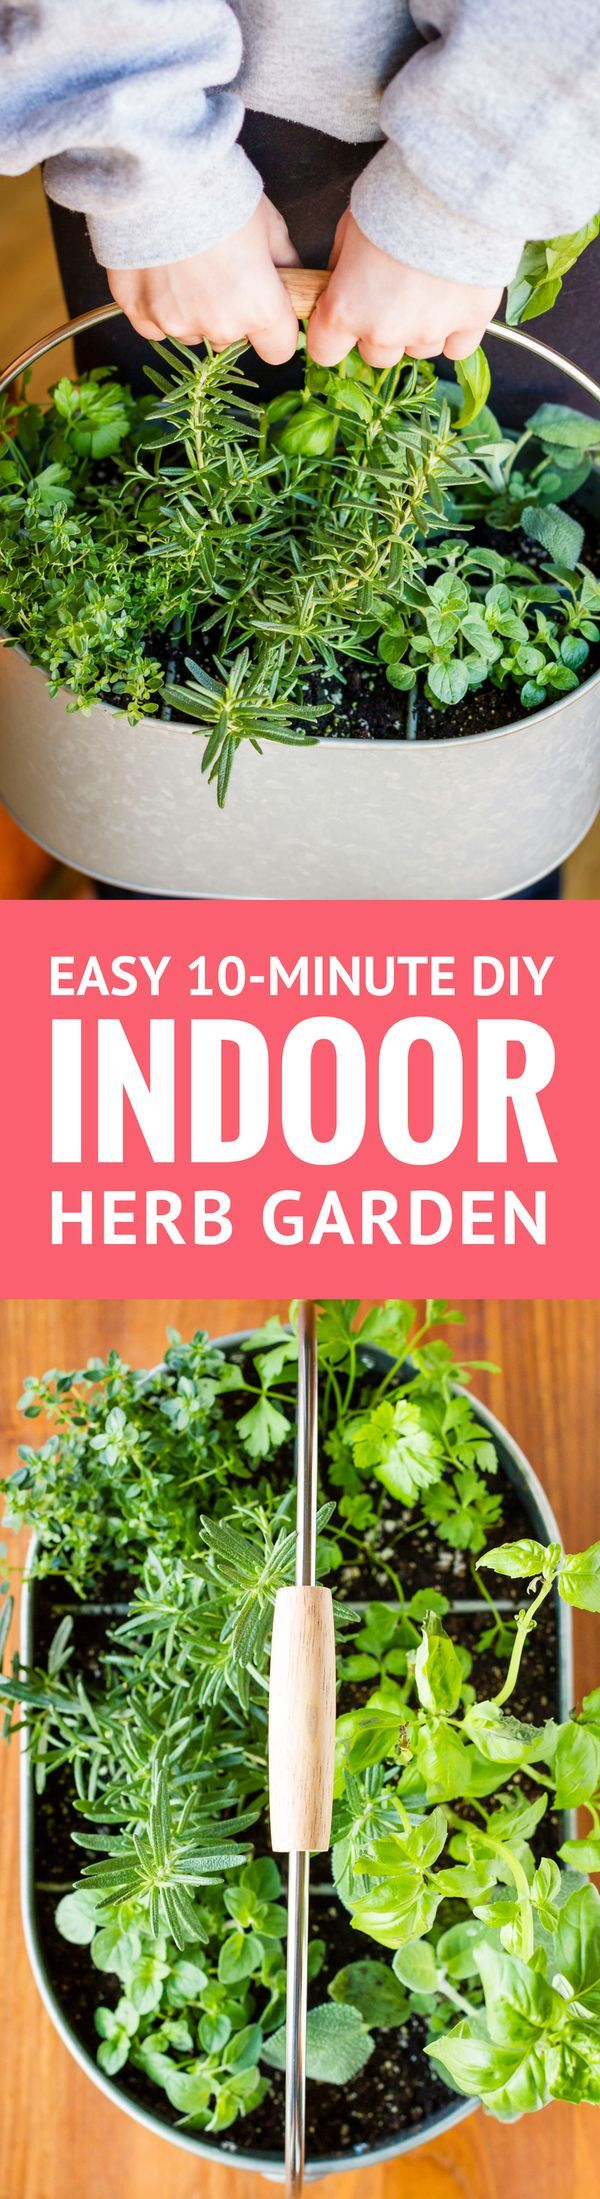 Create a simple DIY indoor herb garden in under 10 minutes!